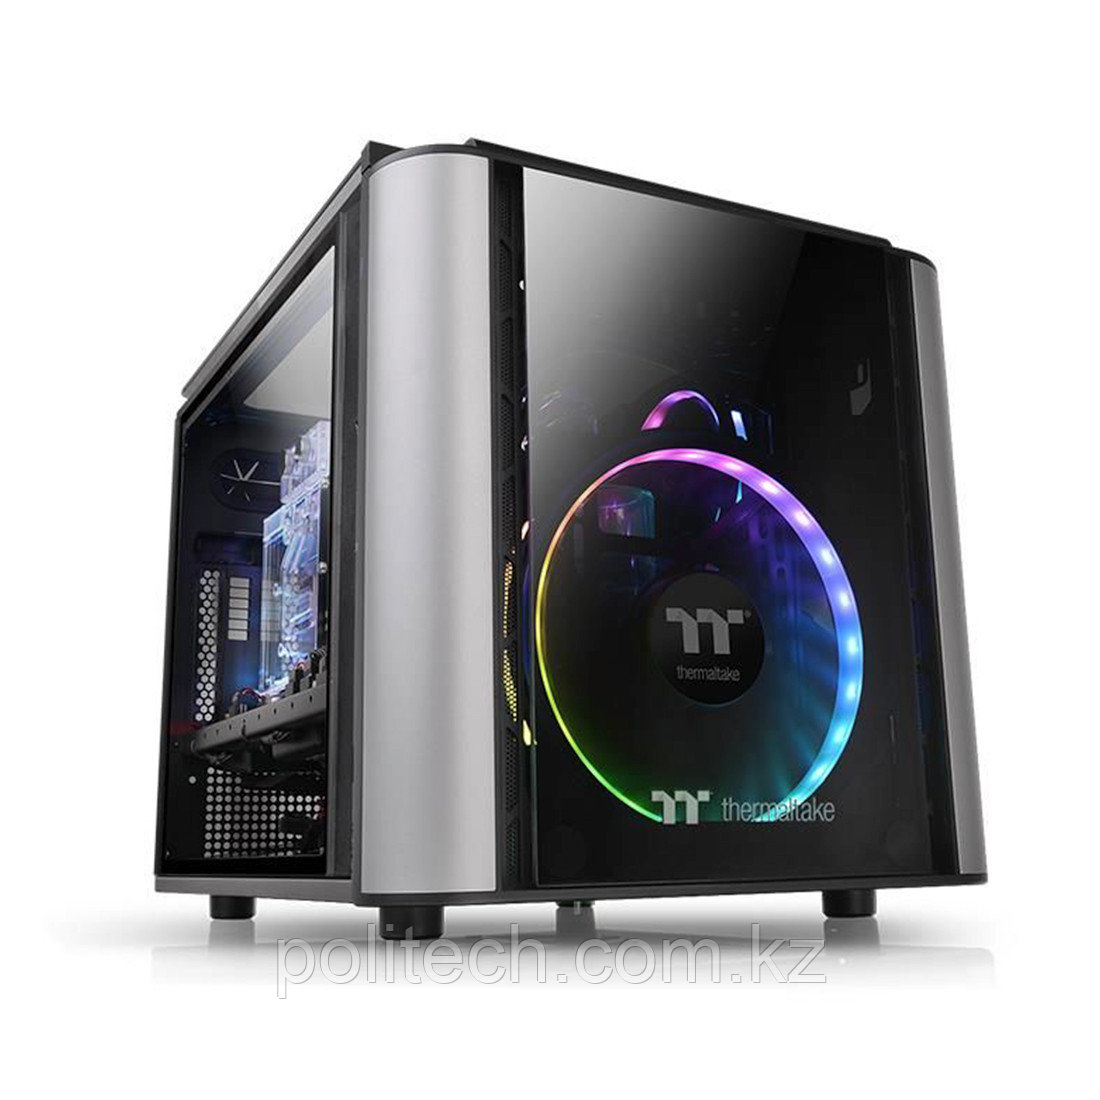 Компьютерный корпус Thermaltake Level 20 VT без Б/П